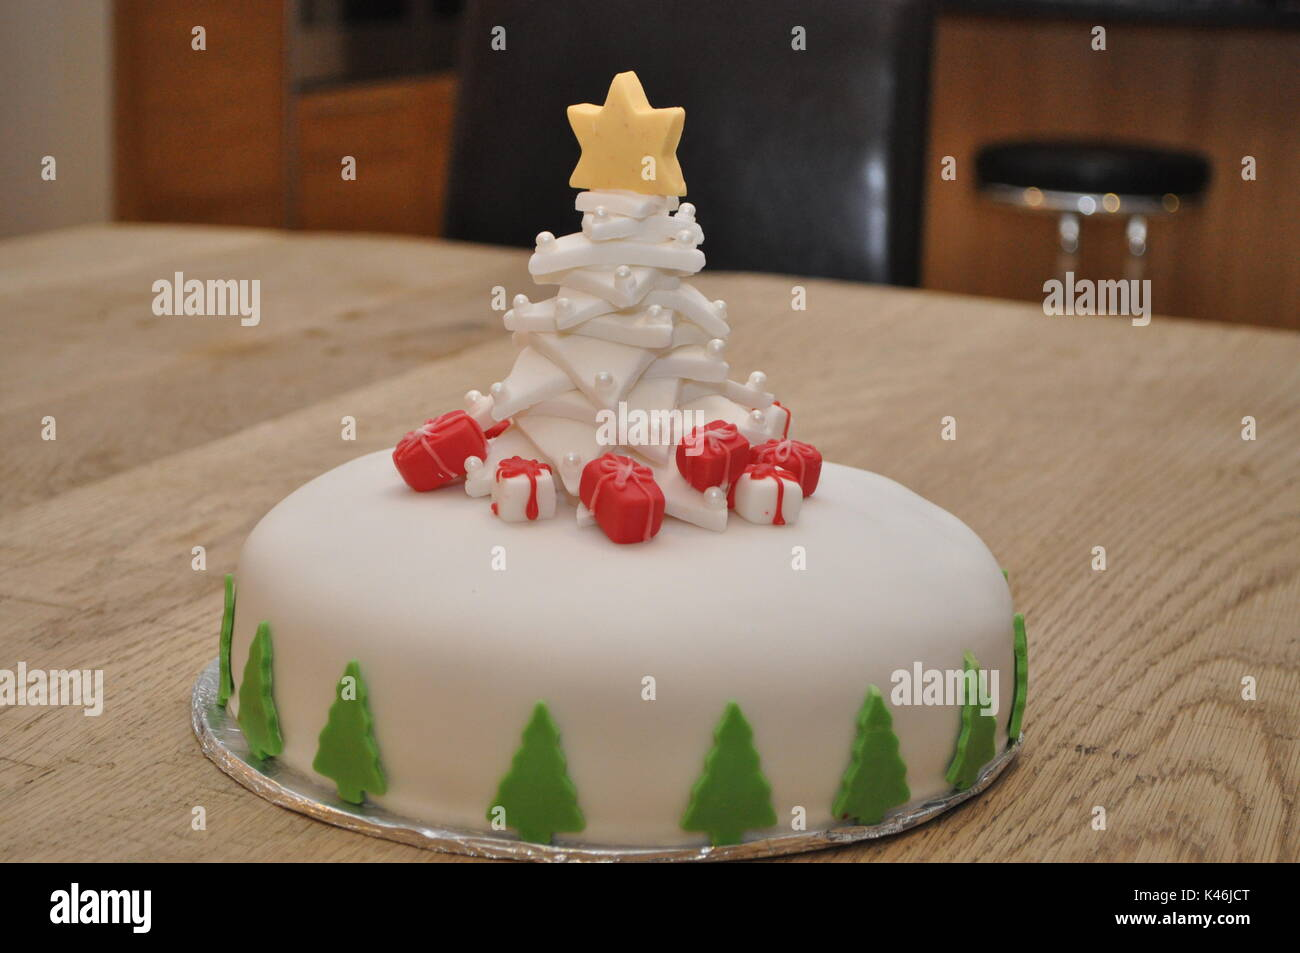 Homemade Christmas Cake Decorated With A Fondant Christmas Tree And